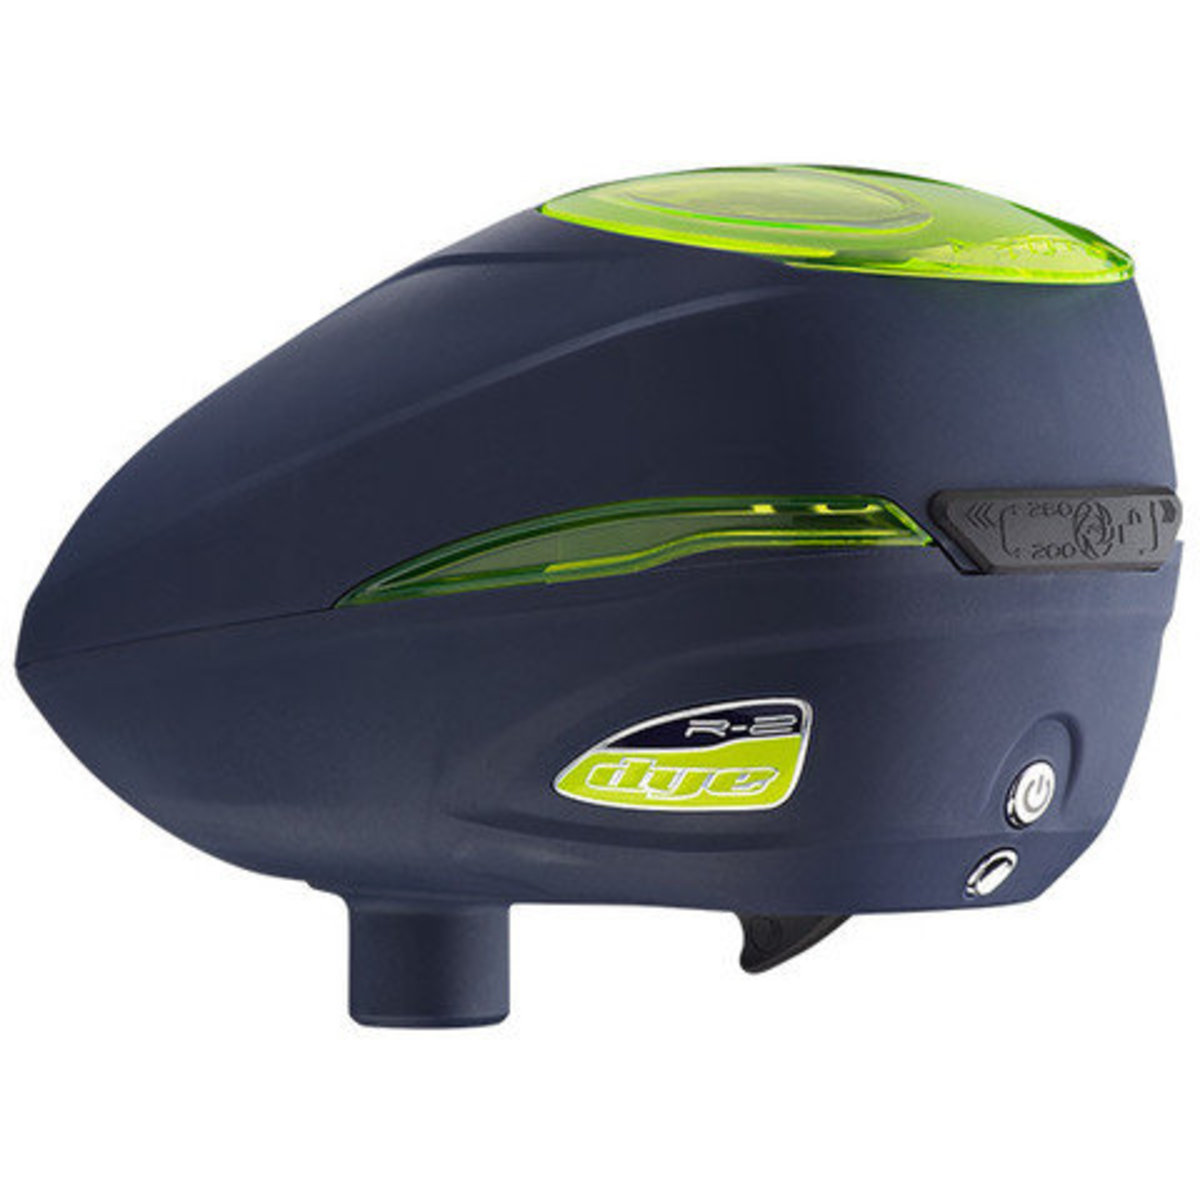 View larger image of Dye Rotor R2 Paintball Loader